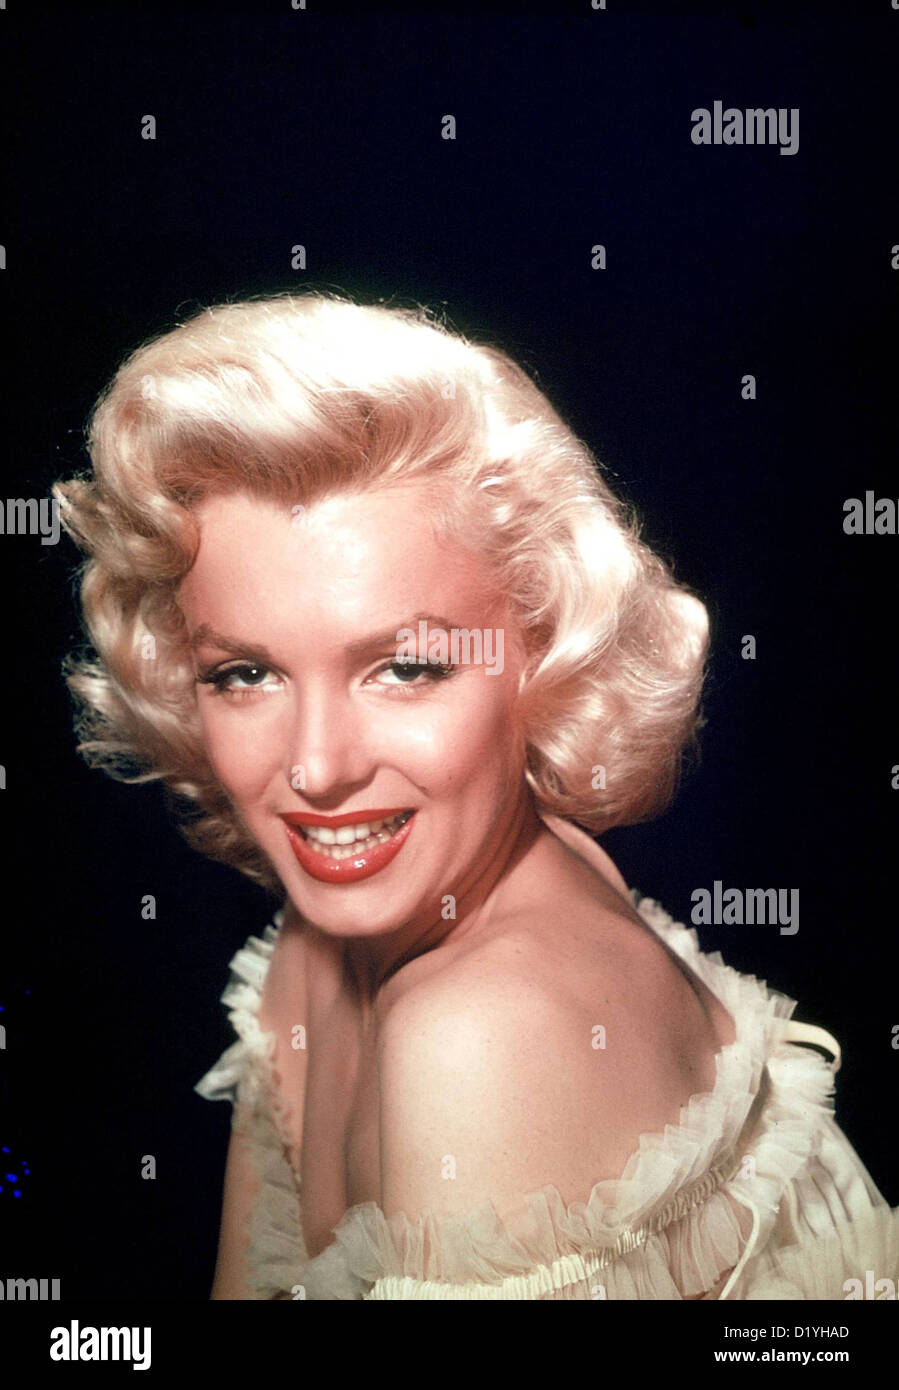 MARILYN MONROE (1926-1962) US film actress about 1956 - Stock Image